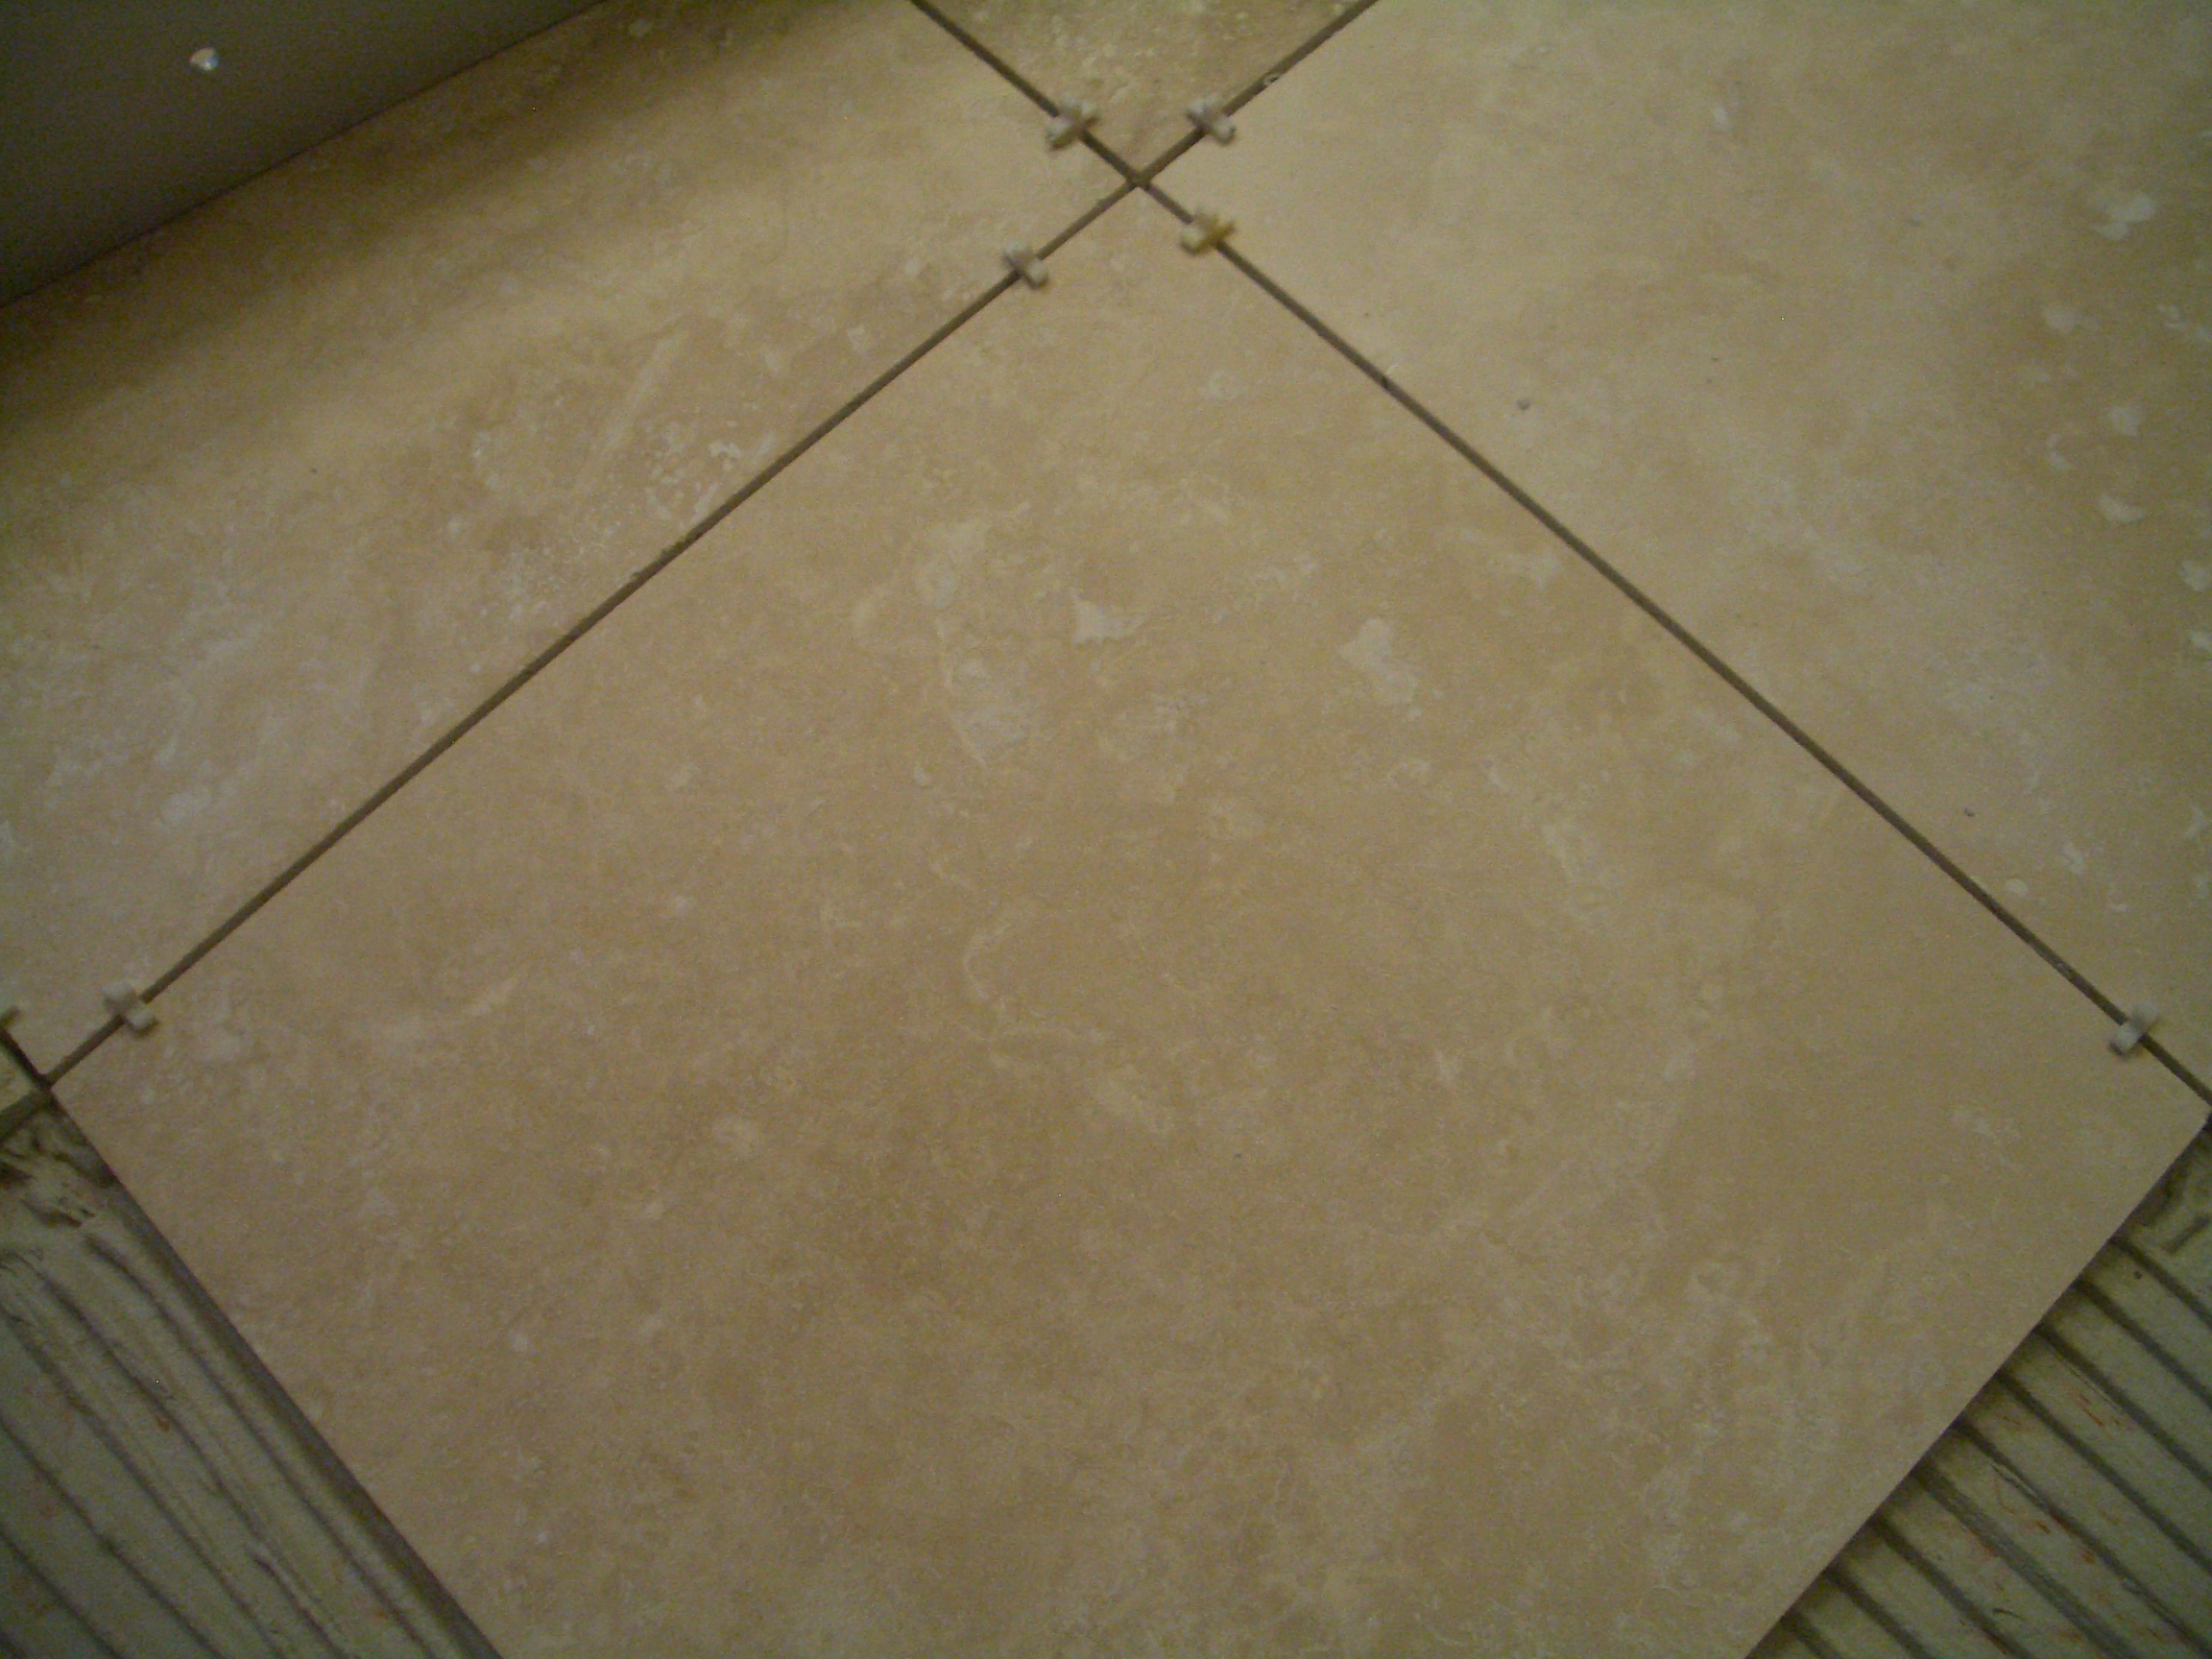 To install absolutely flat floor tile insert spacers and you have an absolutely flat floor dailygadgetfo Choice Image